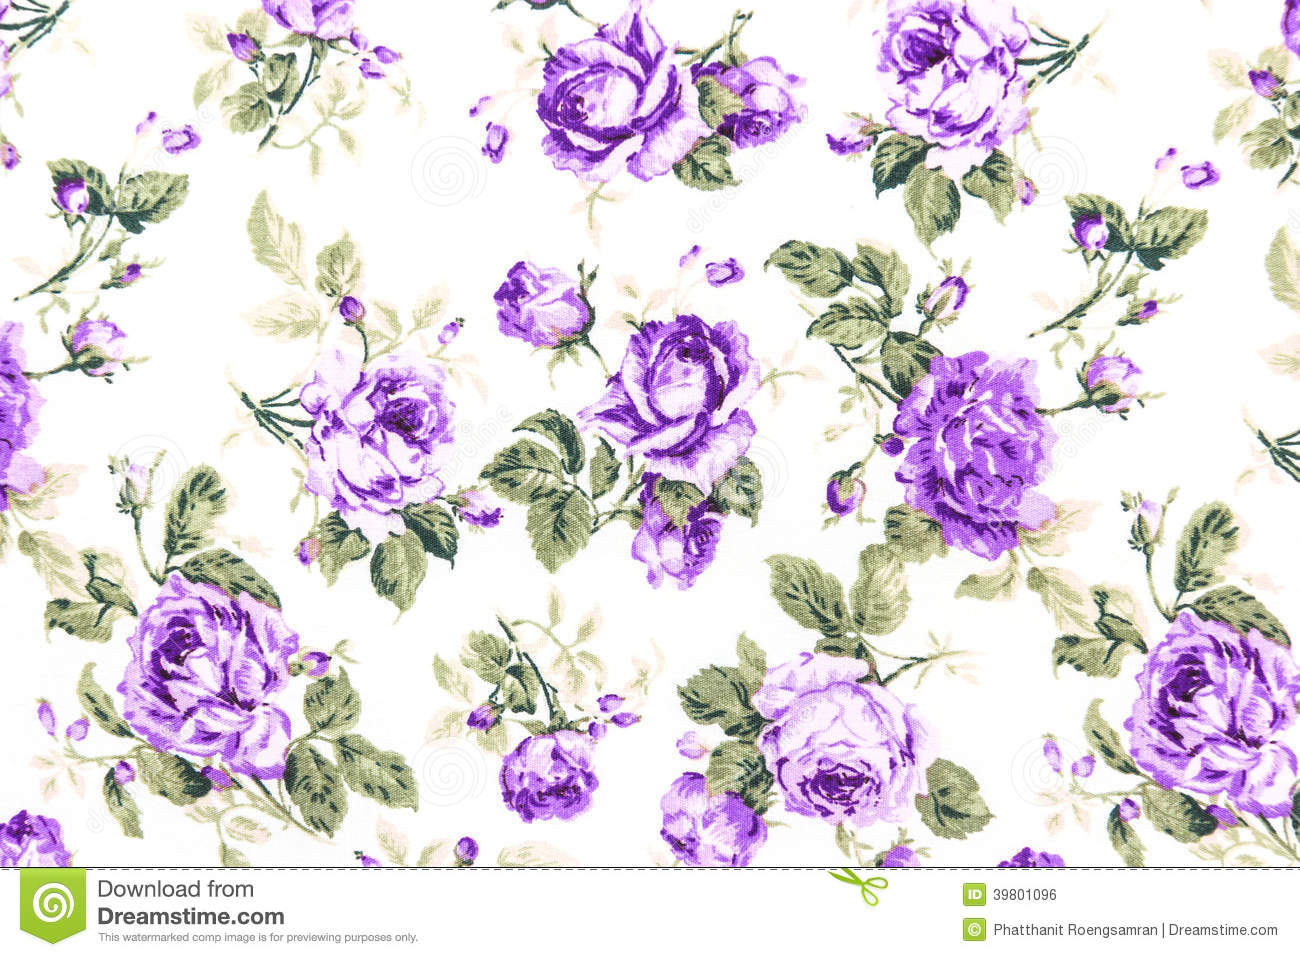 Purple vintage floral pattern - photo#18